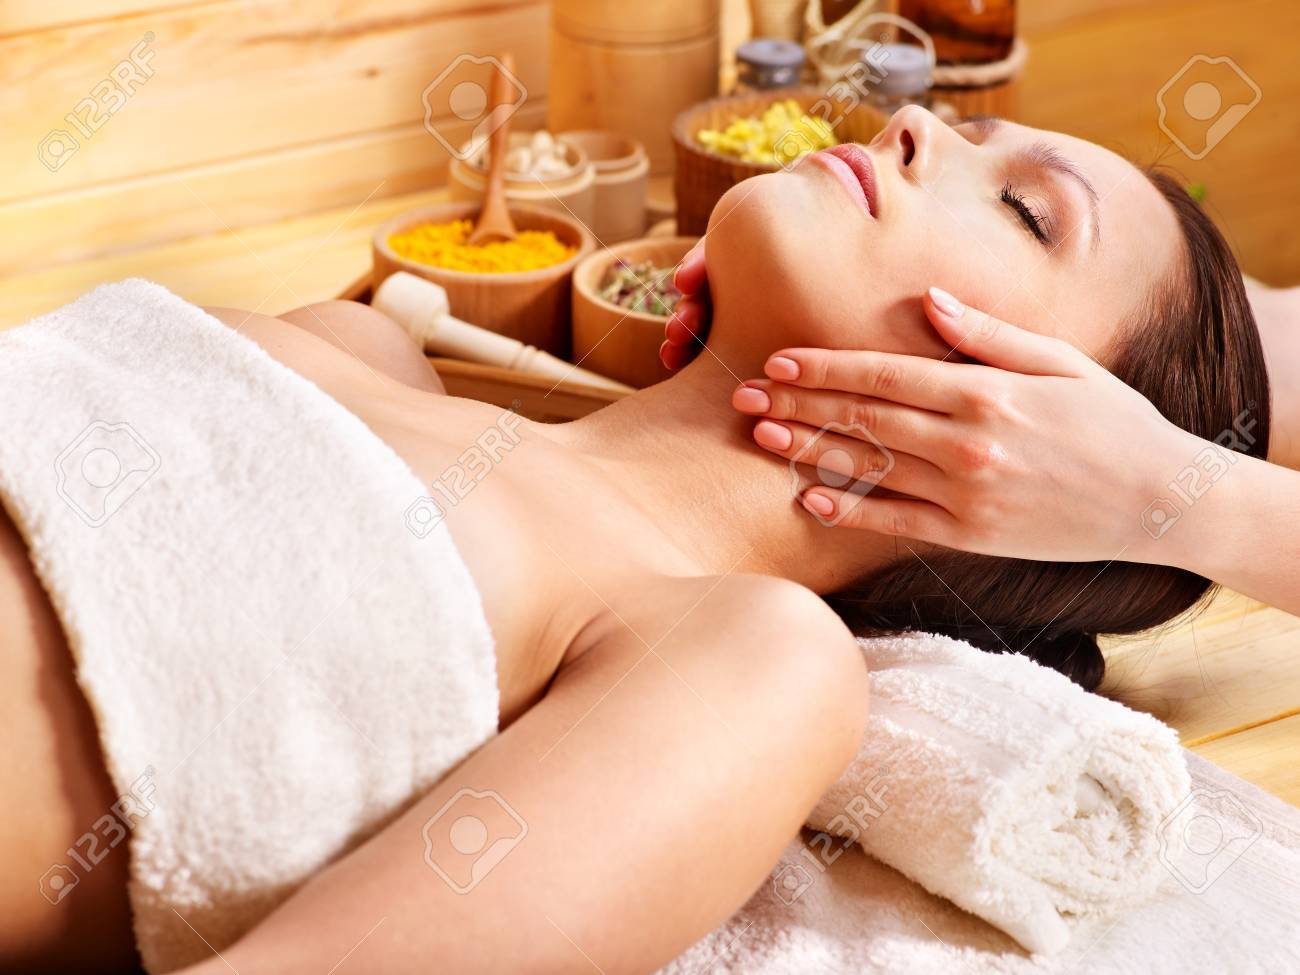 Woman getting facial  massage in wooden spa. Stock Photo - 13308320